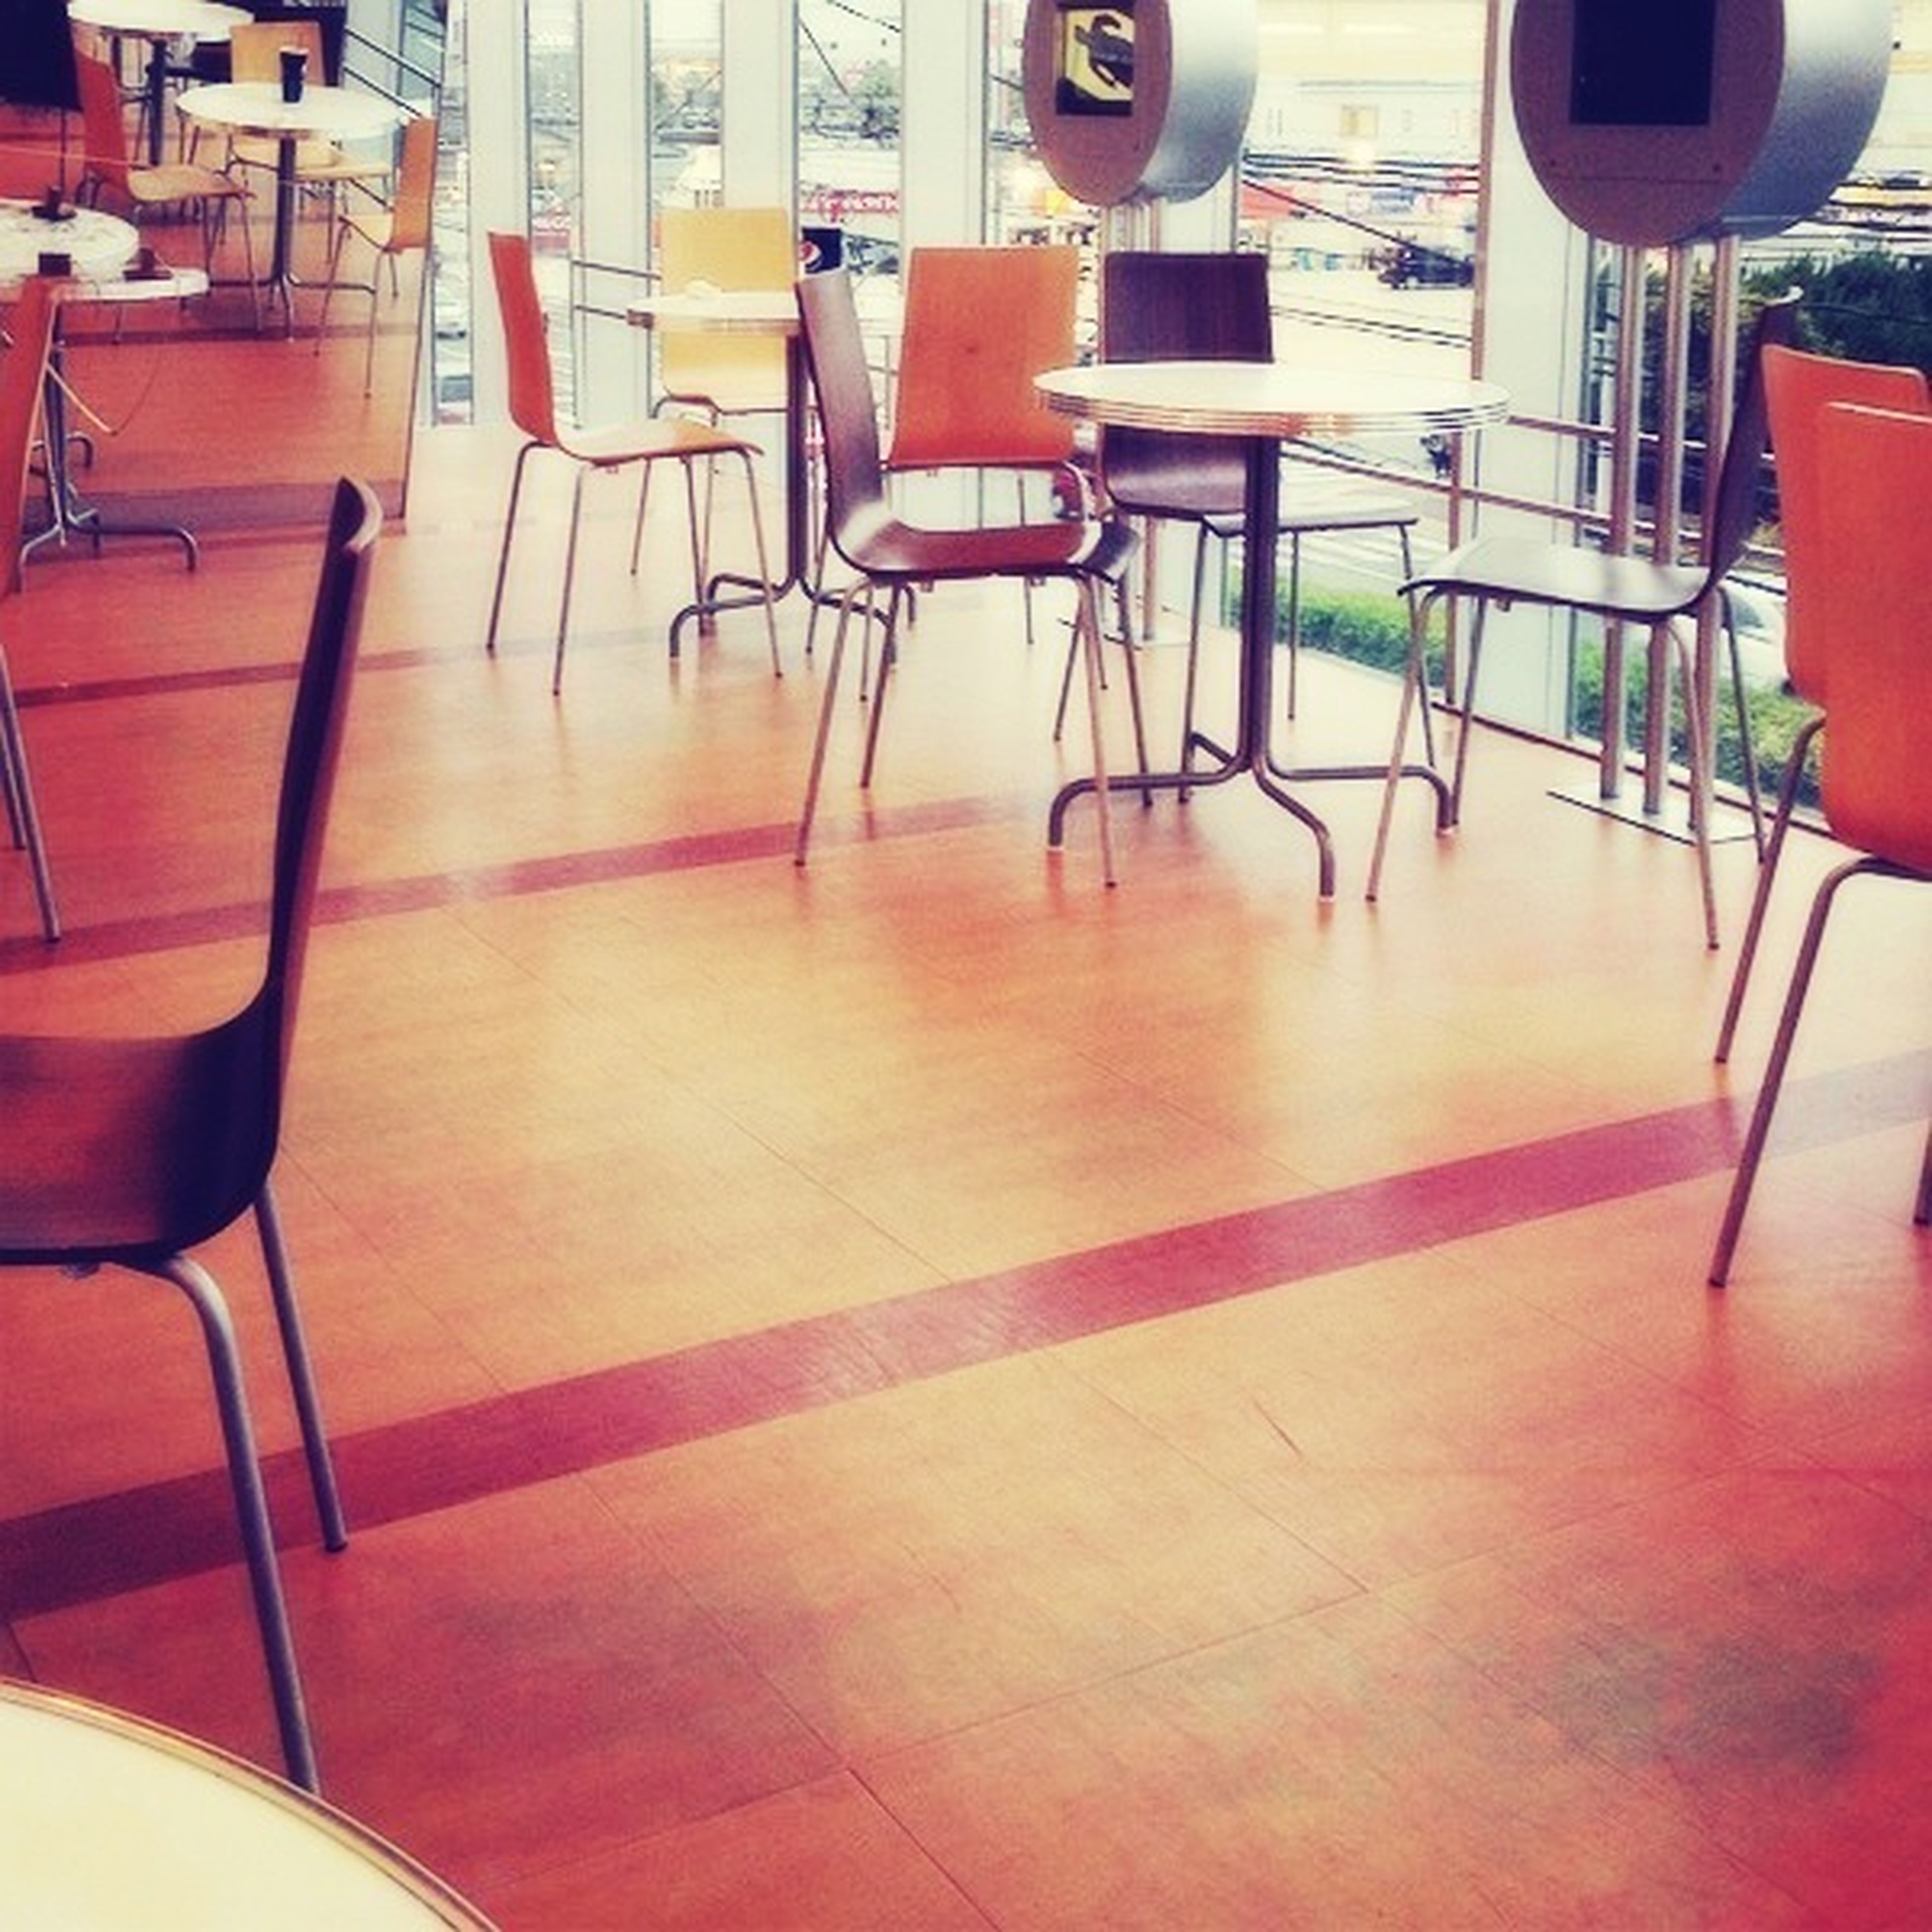 chair, empty, absence, indoors, seat, table, built structure, architecture, furniture, no people, flooring, red, day, in a row, reflection, window, tiled floor, restaurant, sunlight, building exterior